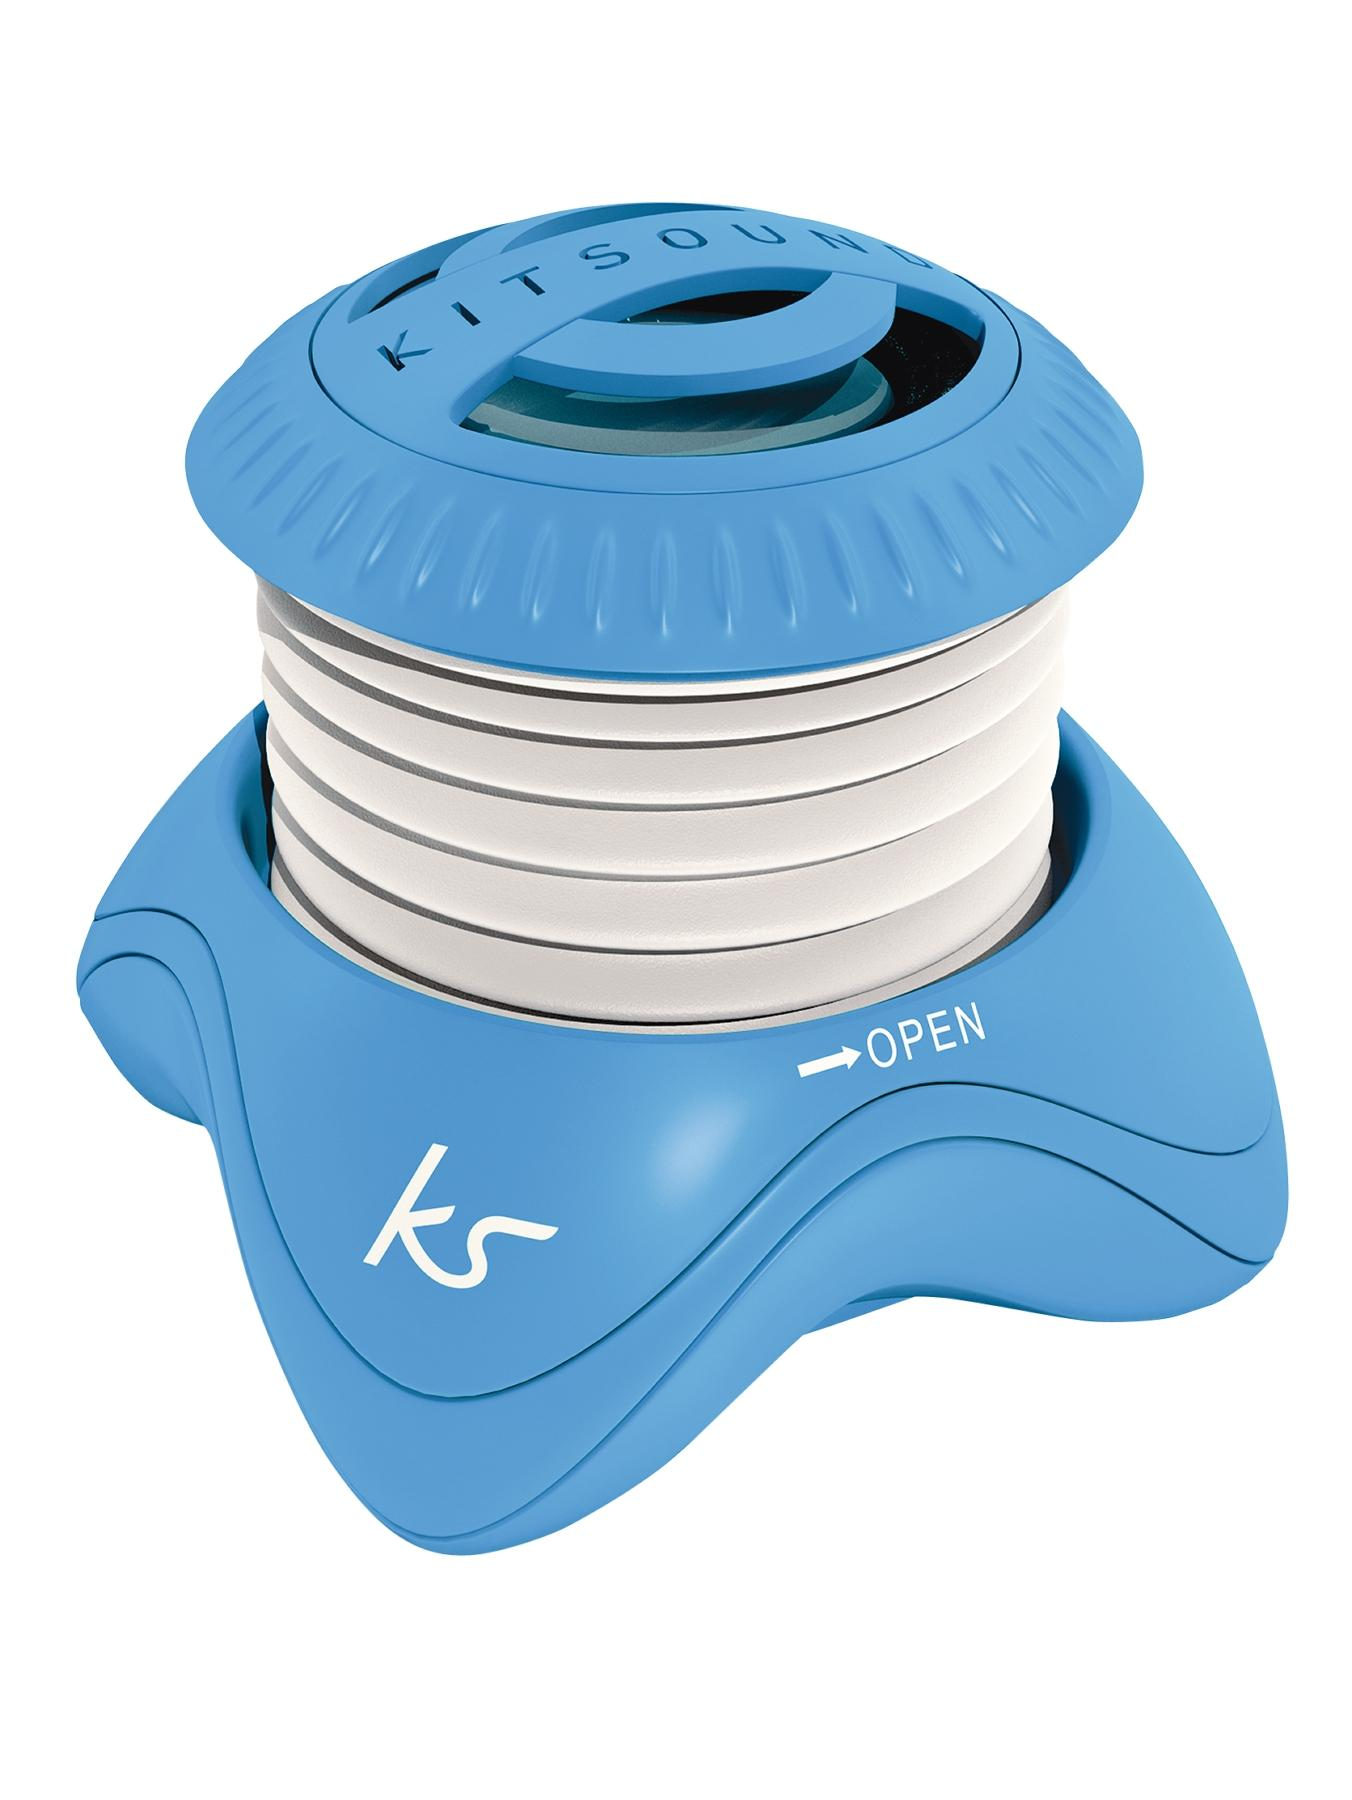 Kitsound Portable Capsule Speaker - Blue